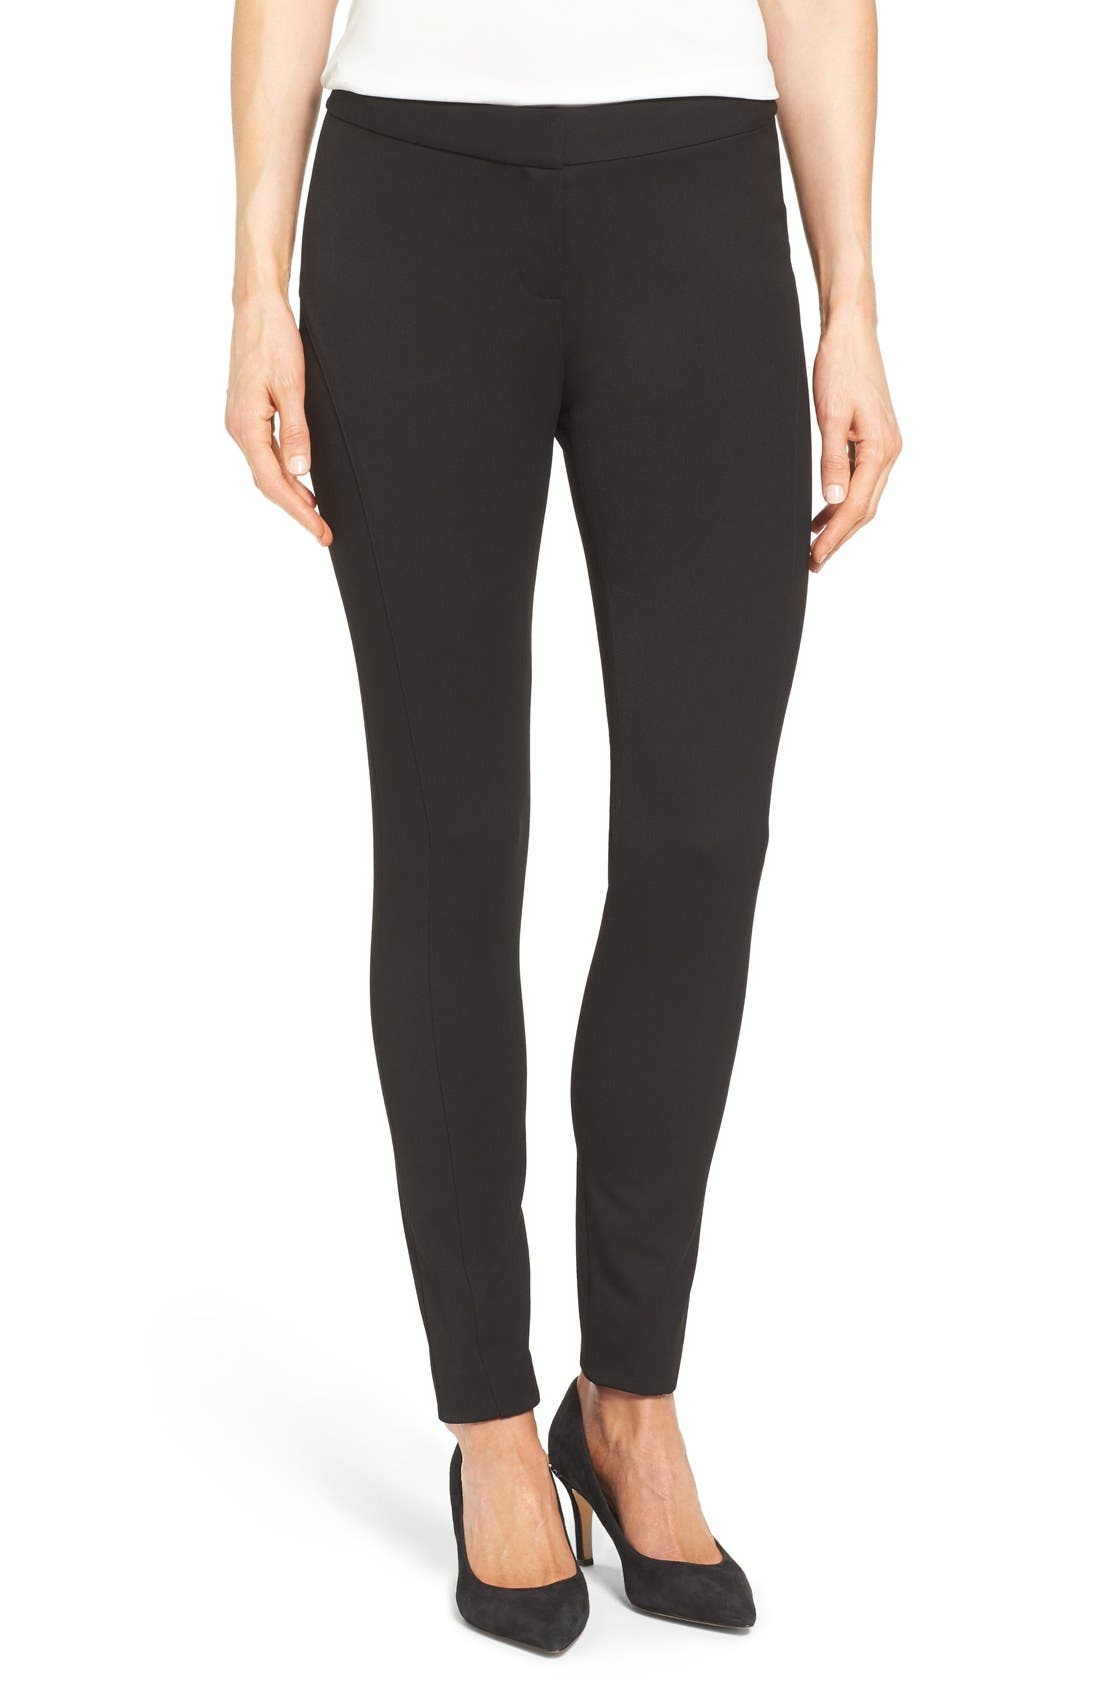 Main Image - Vince Camuto Stretch Twill Skinny Pants (Regular & Petite)